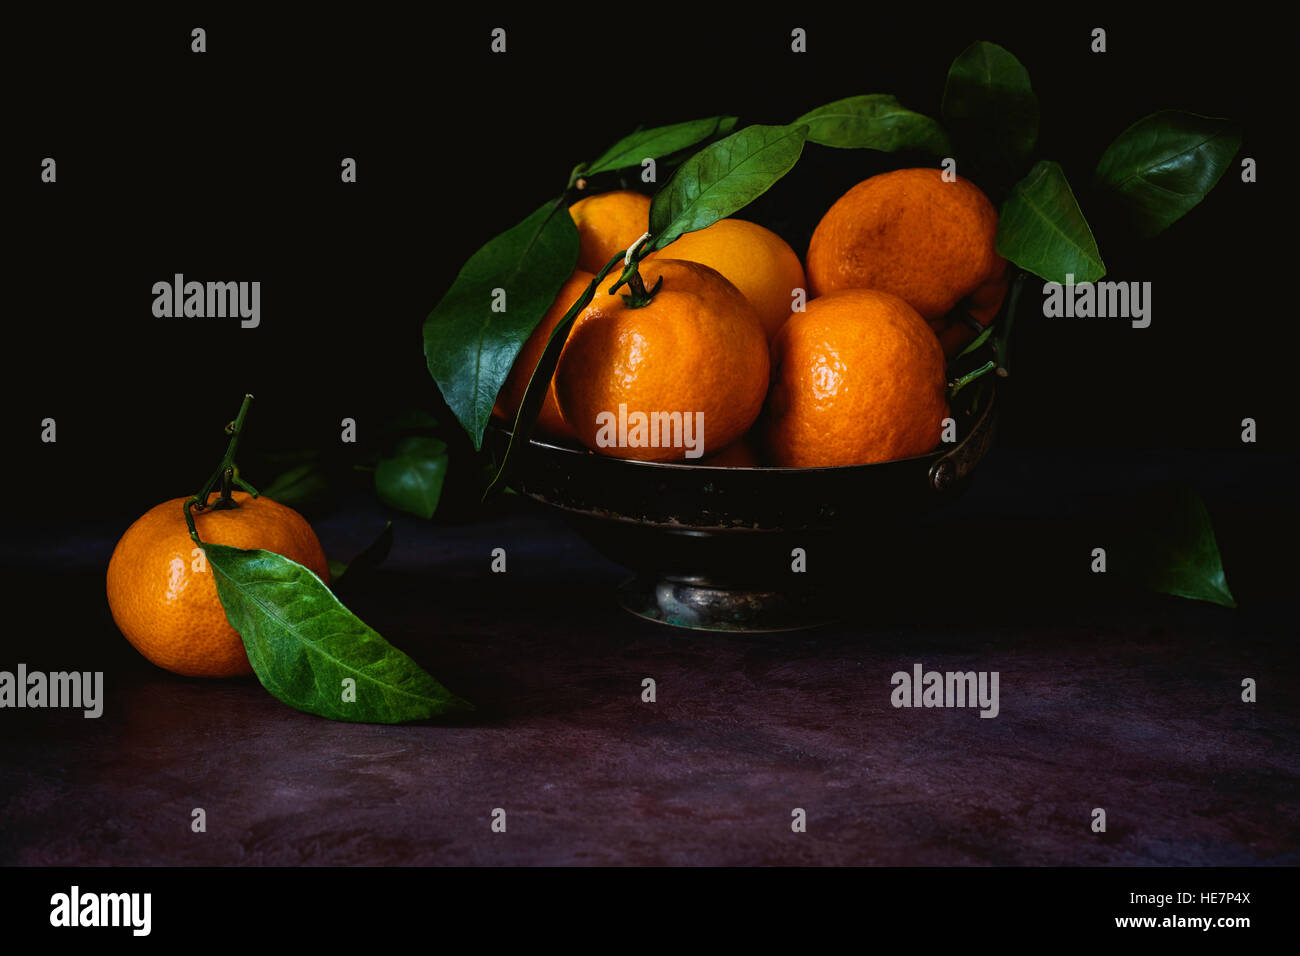 Still life of fresh tangerines with green leaves in vintage metal bowl. Toned image, low key technique (chiaroscuro). - Stock Image